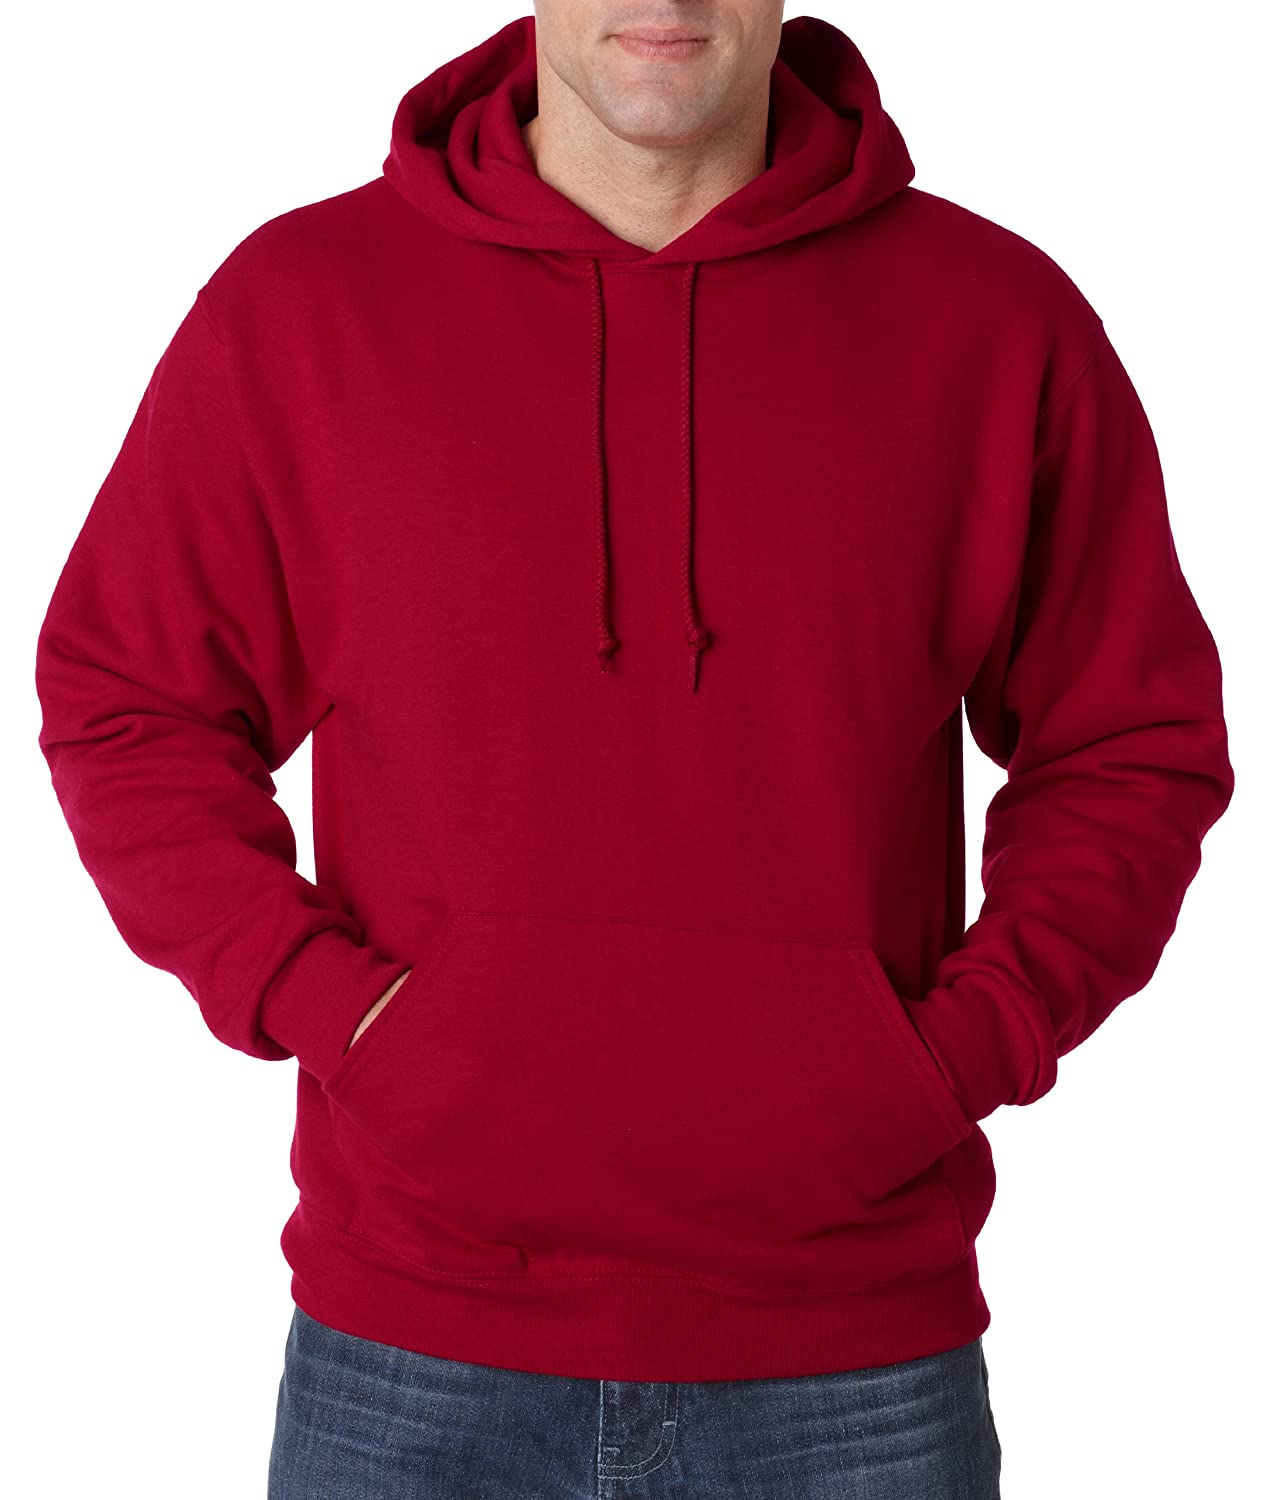 XXXX-Large NuBlend 50//50 Pullover Hood Maroon Jerzees 8 oz